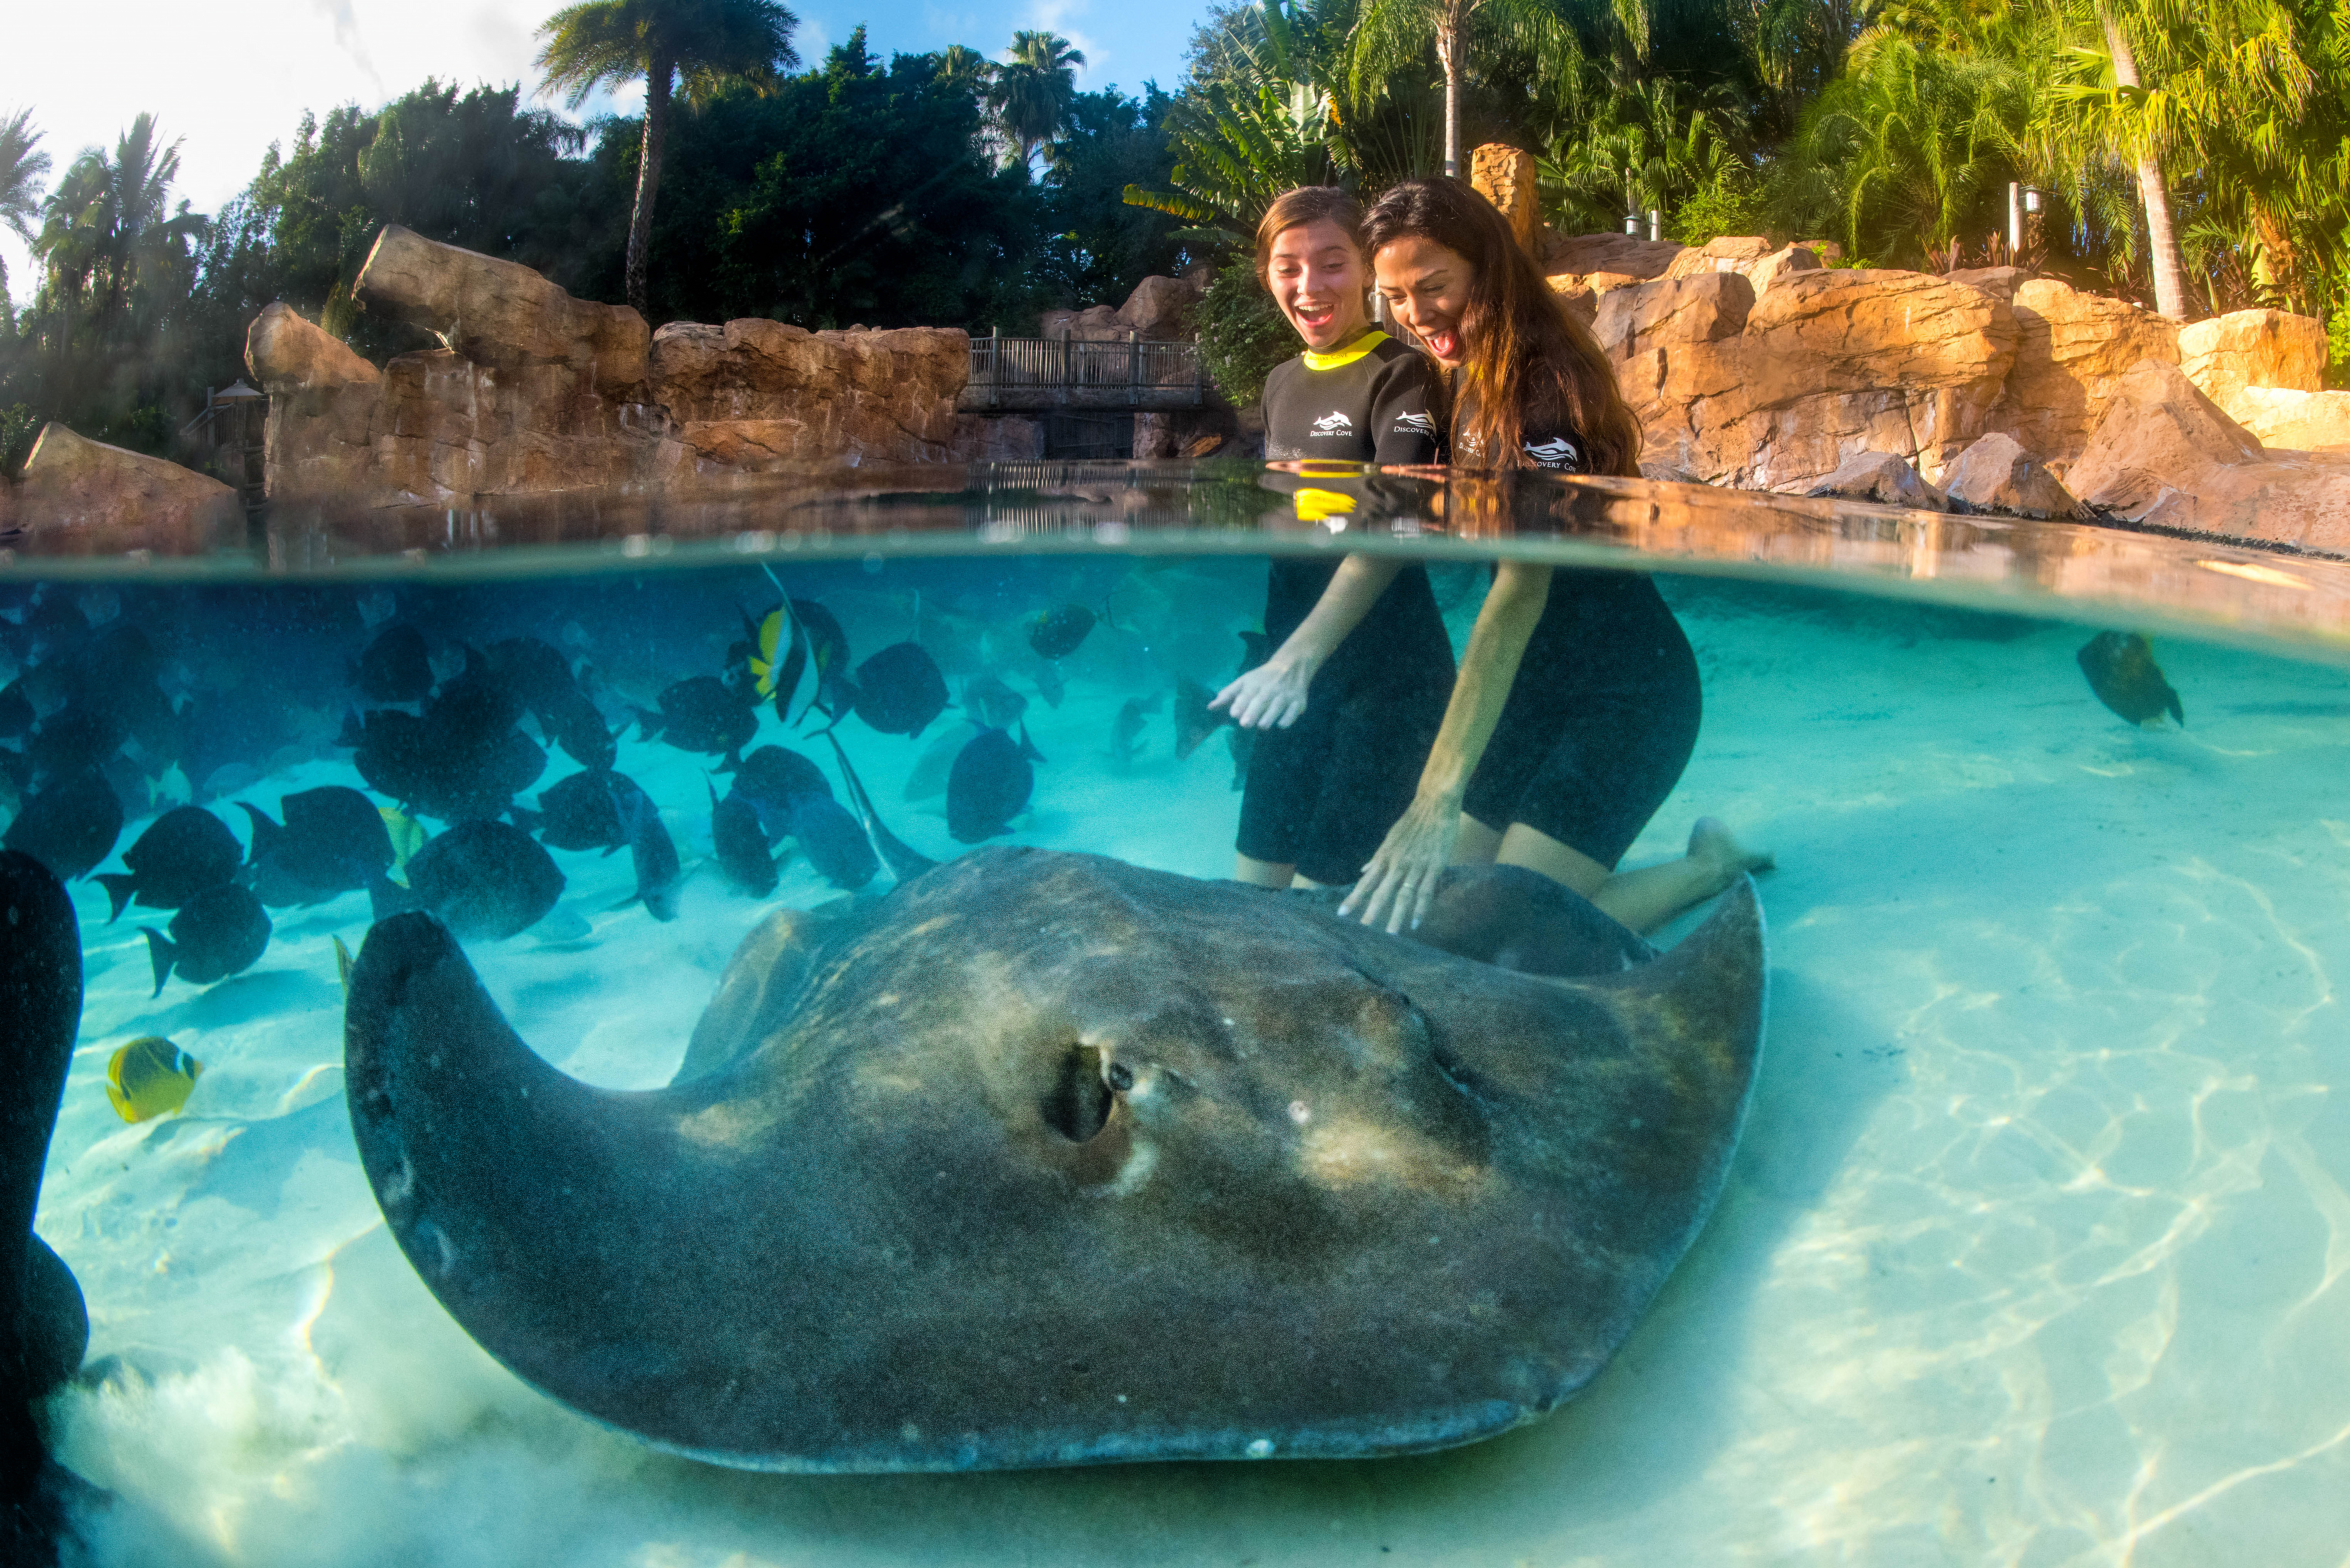 Guests touch a ray underwater in the Grand Reef.